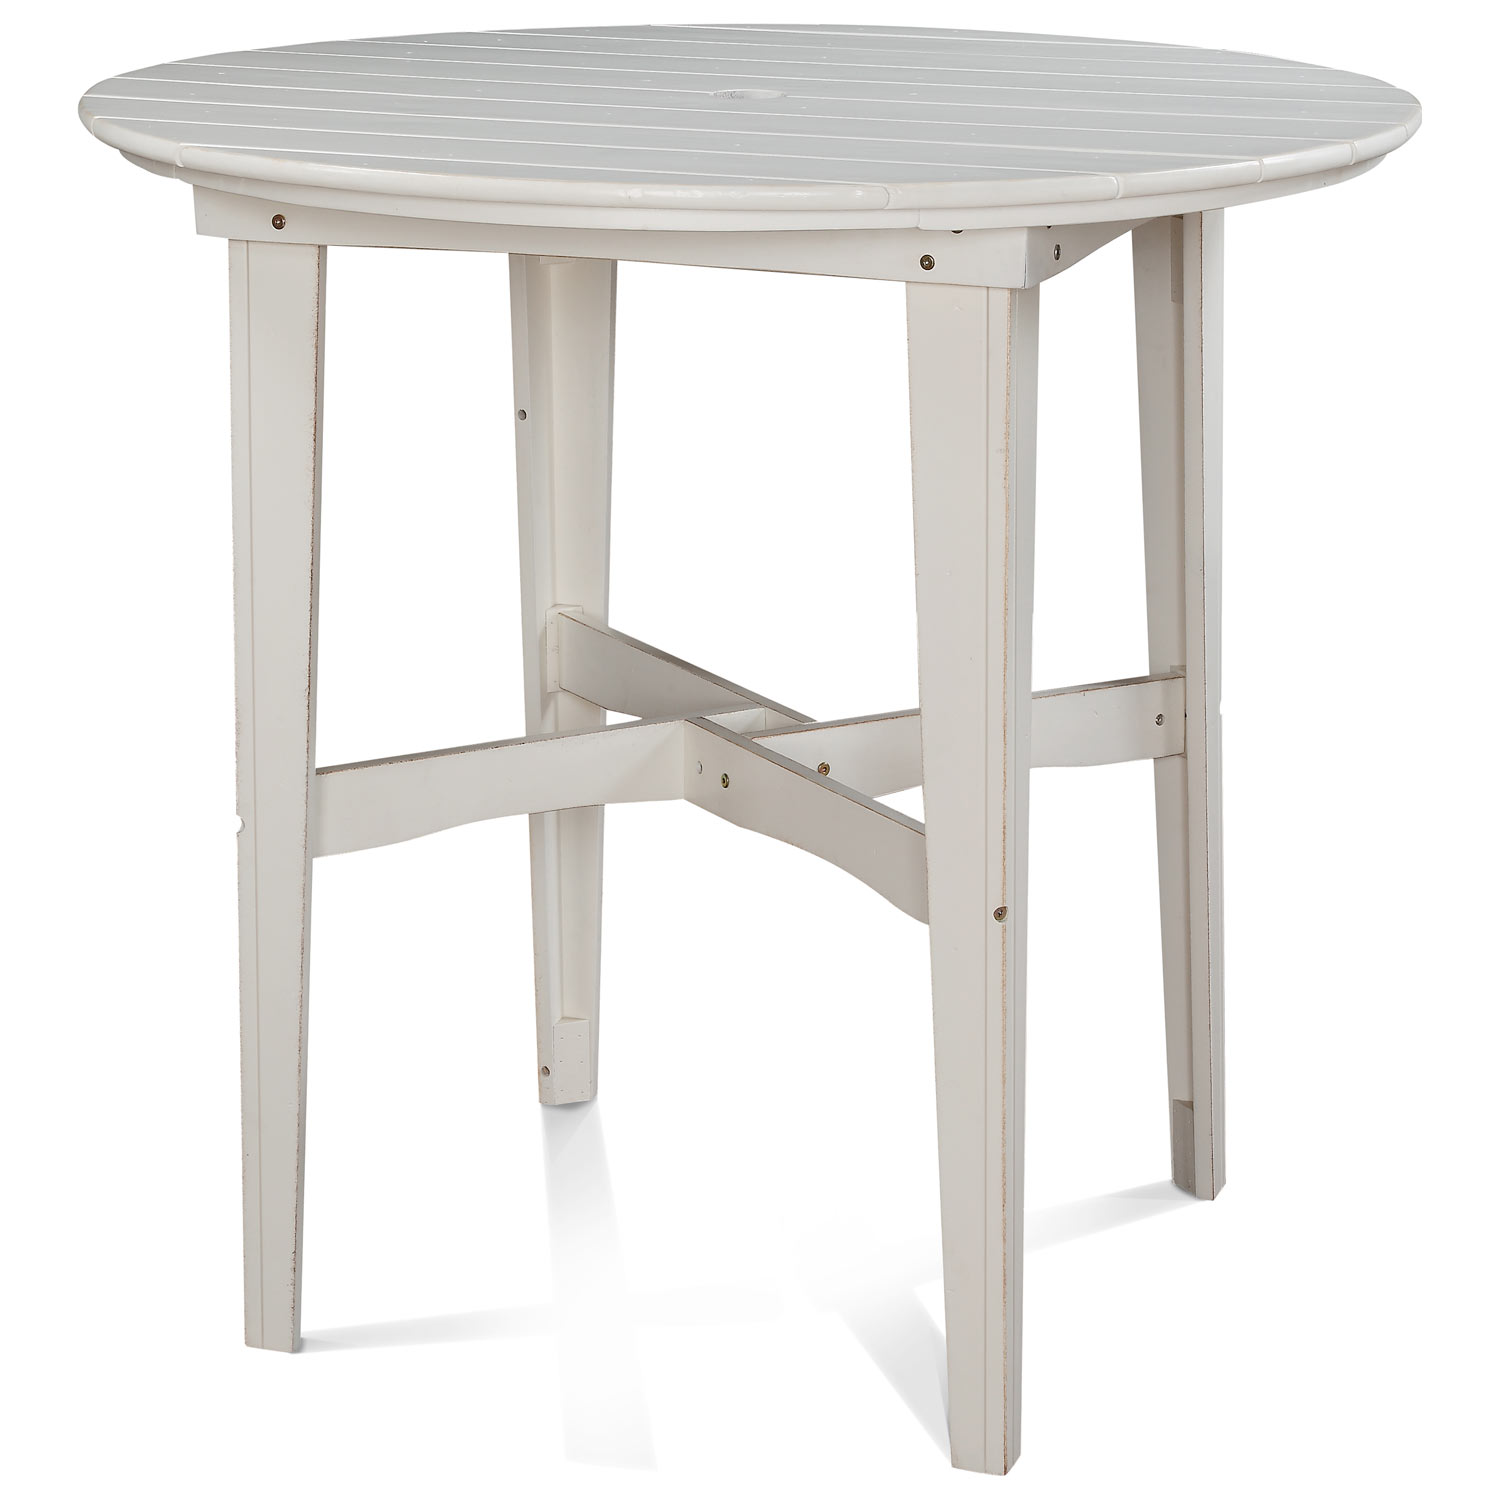 "48"" Round Outdoor Bar Height Table - Plank Top, Soft Sand Finish - CHIC-CRF-6BT48-SS"